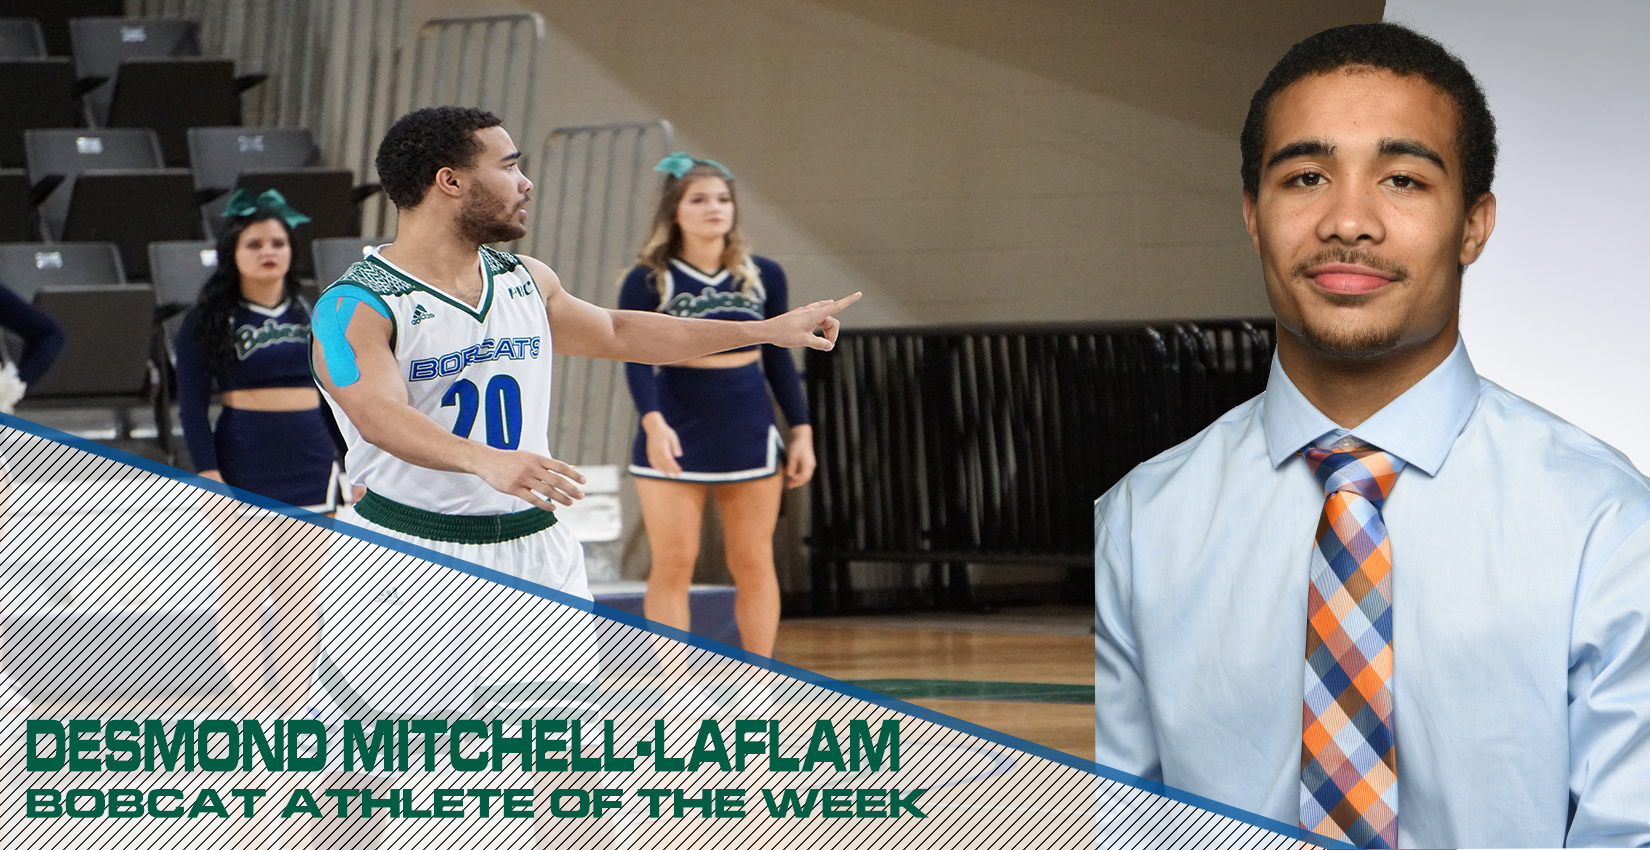 LaFlam named Athlete of The Week